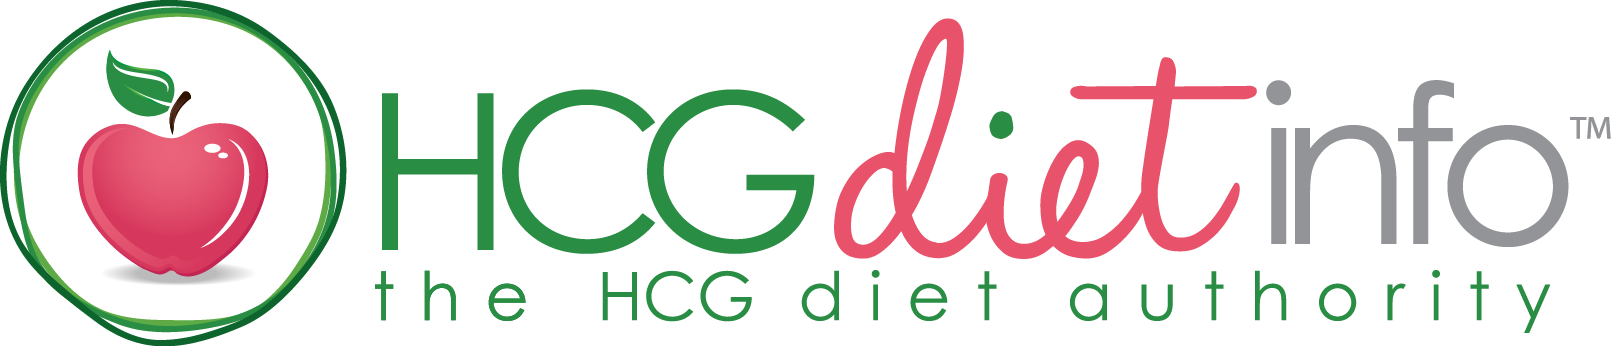 hCG Diet Info - The new hcg diet plan